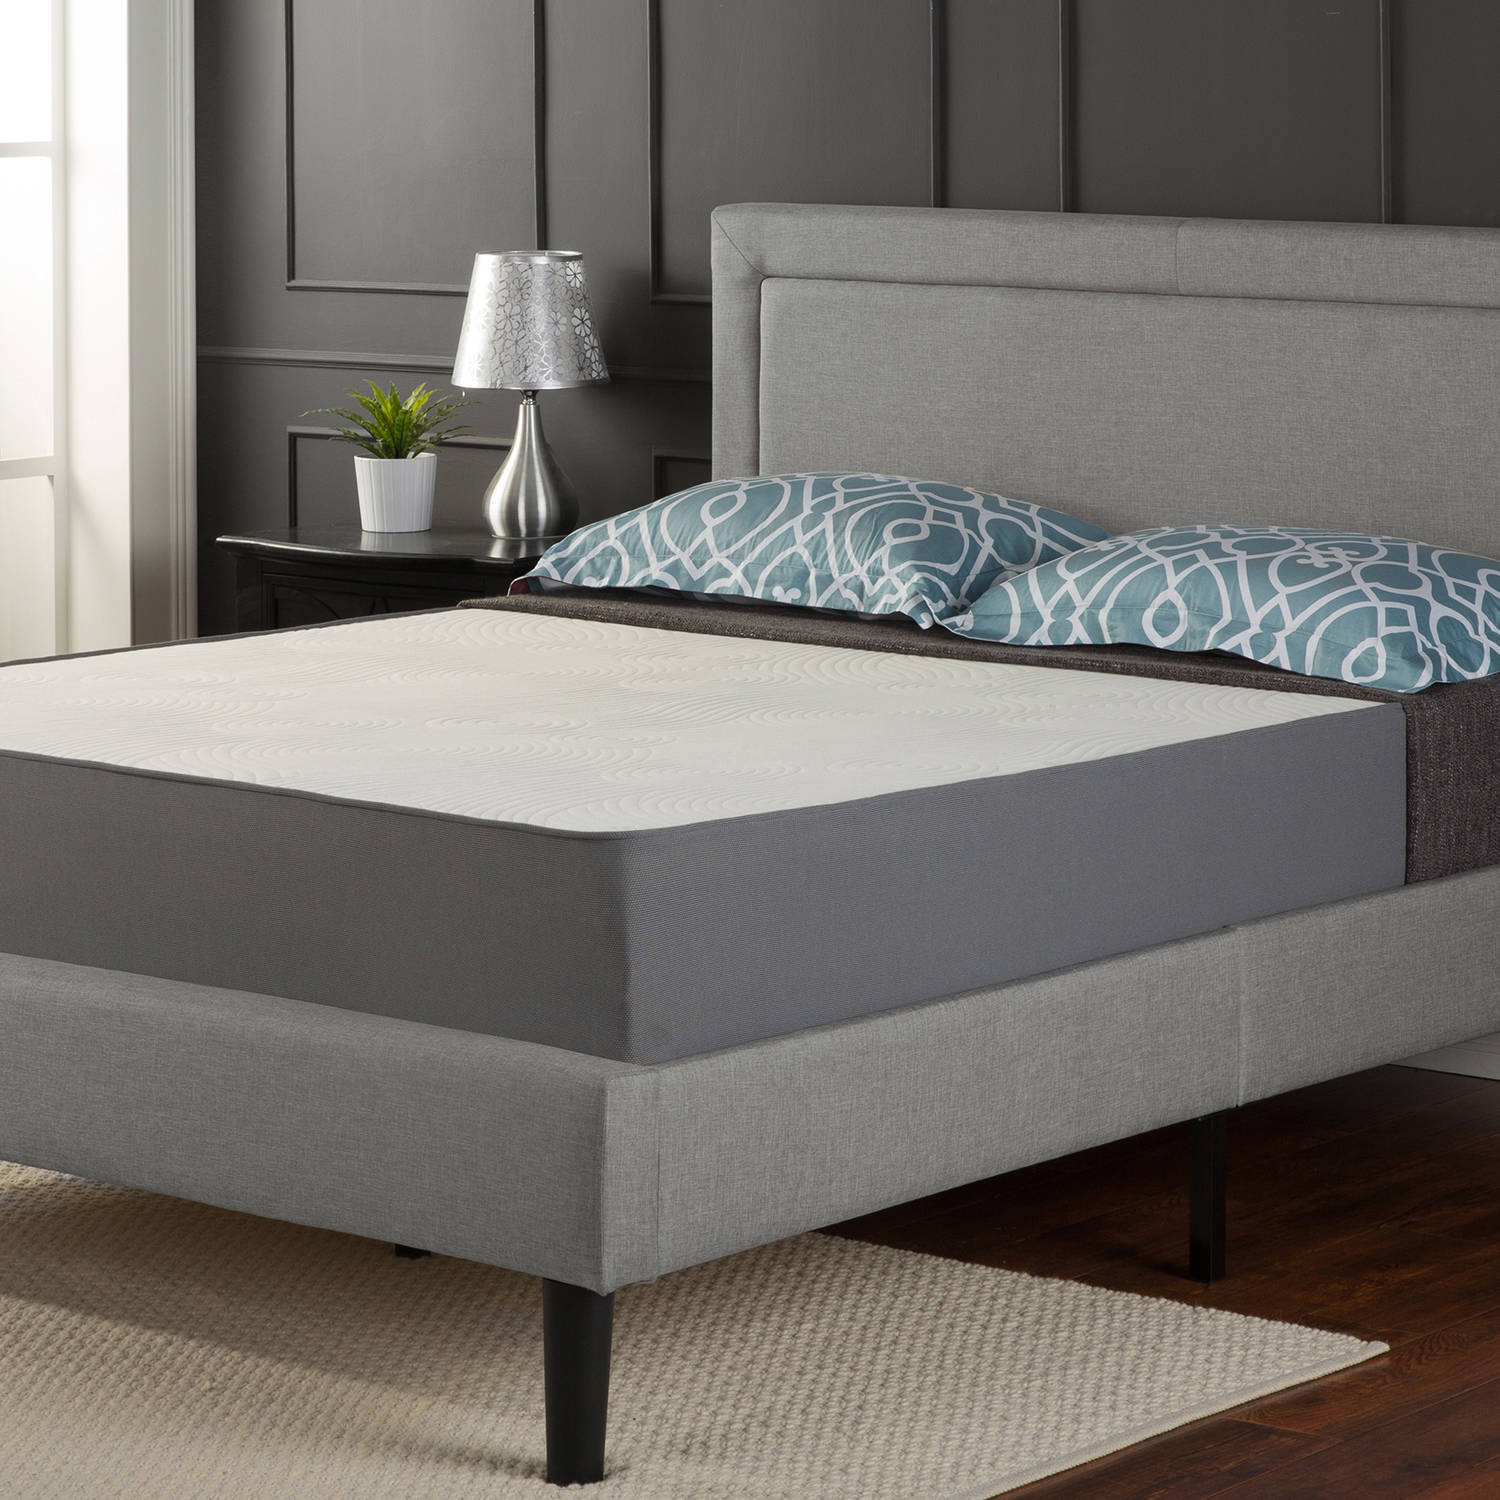 Zinus Upholstered Square Stitched Platform Bed with Headboard and Wooden  Slats  Multiple Sizes   Walmart com. Zinus Upholstered Square Stitched Platform Bed with Headboard and